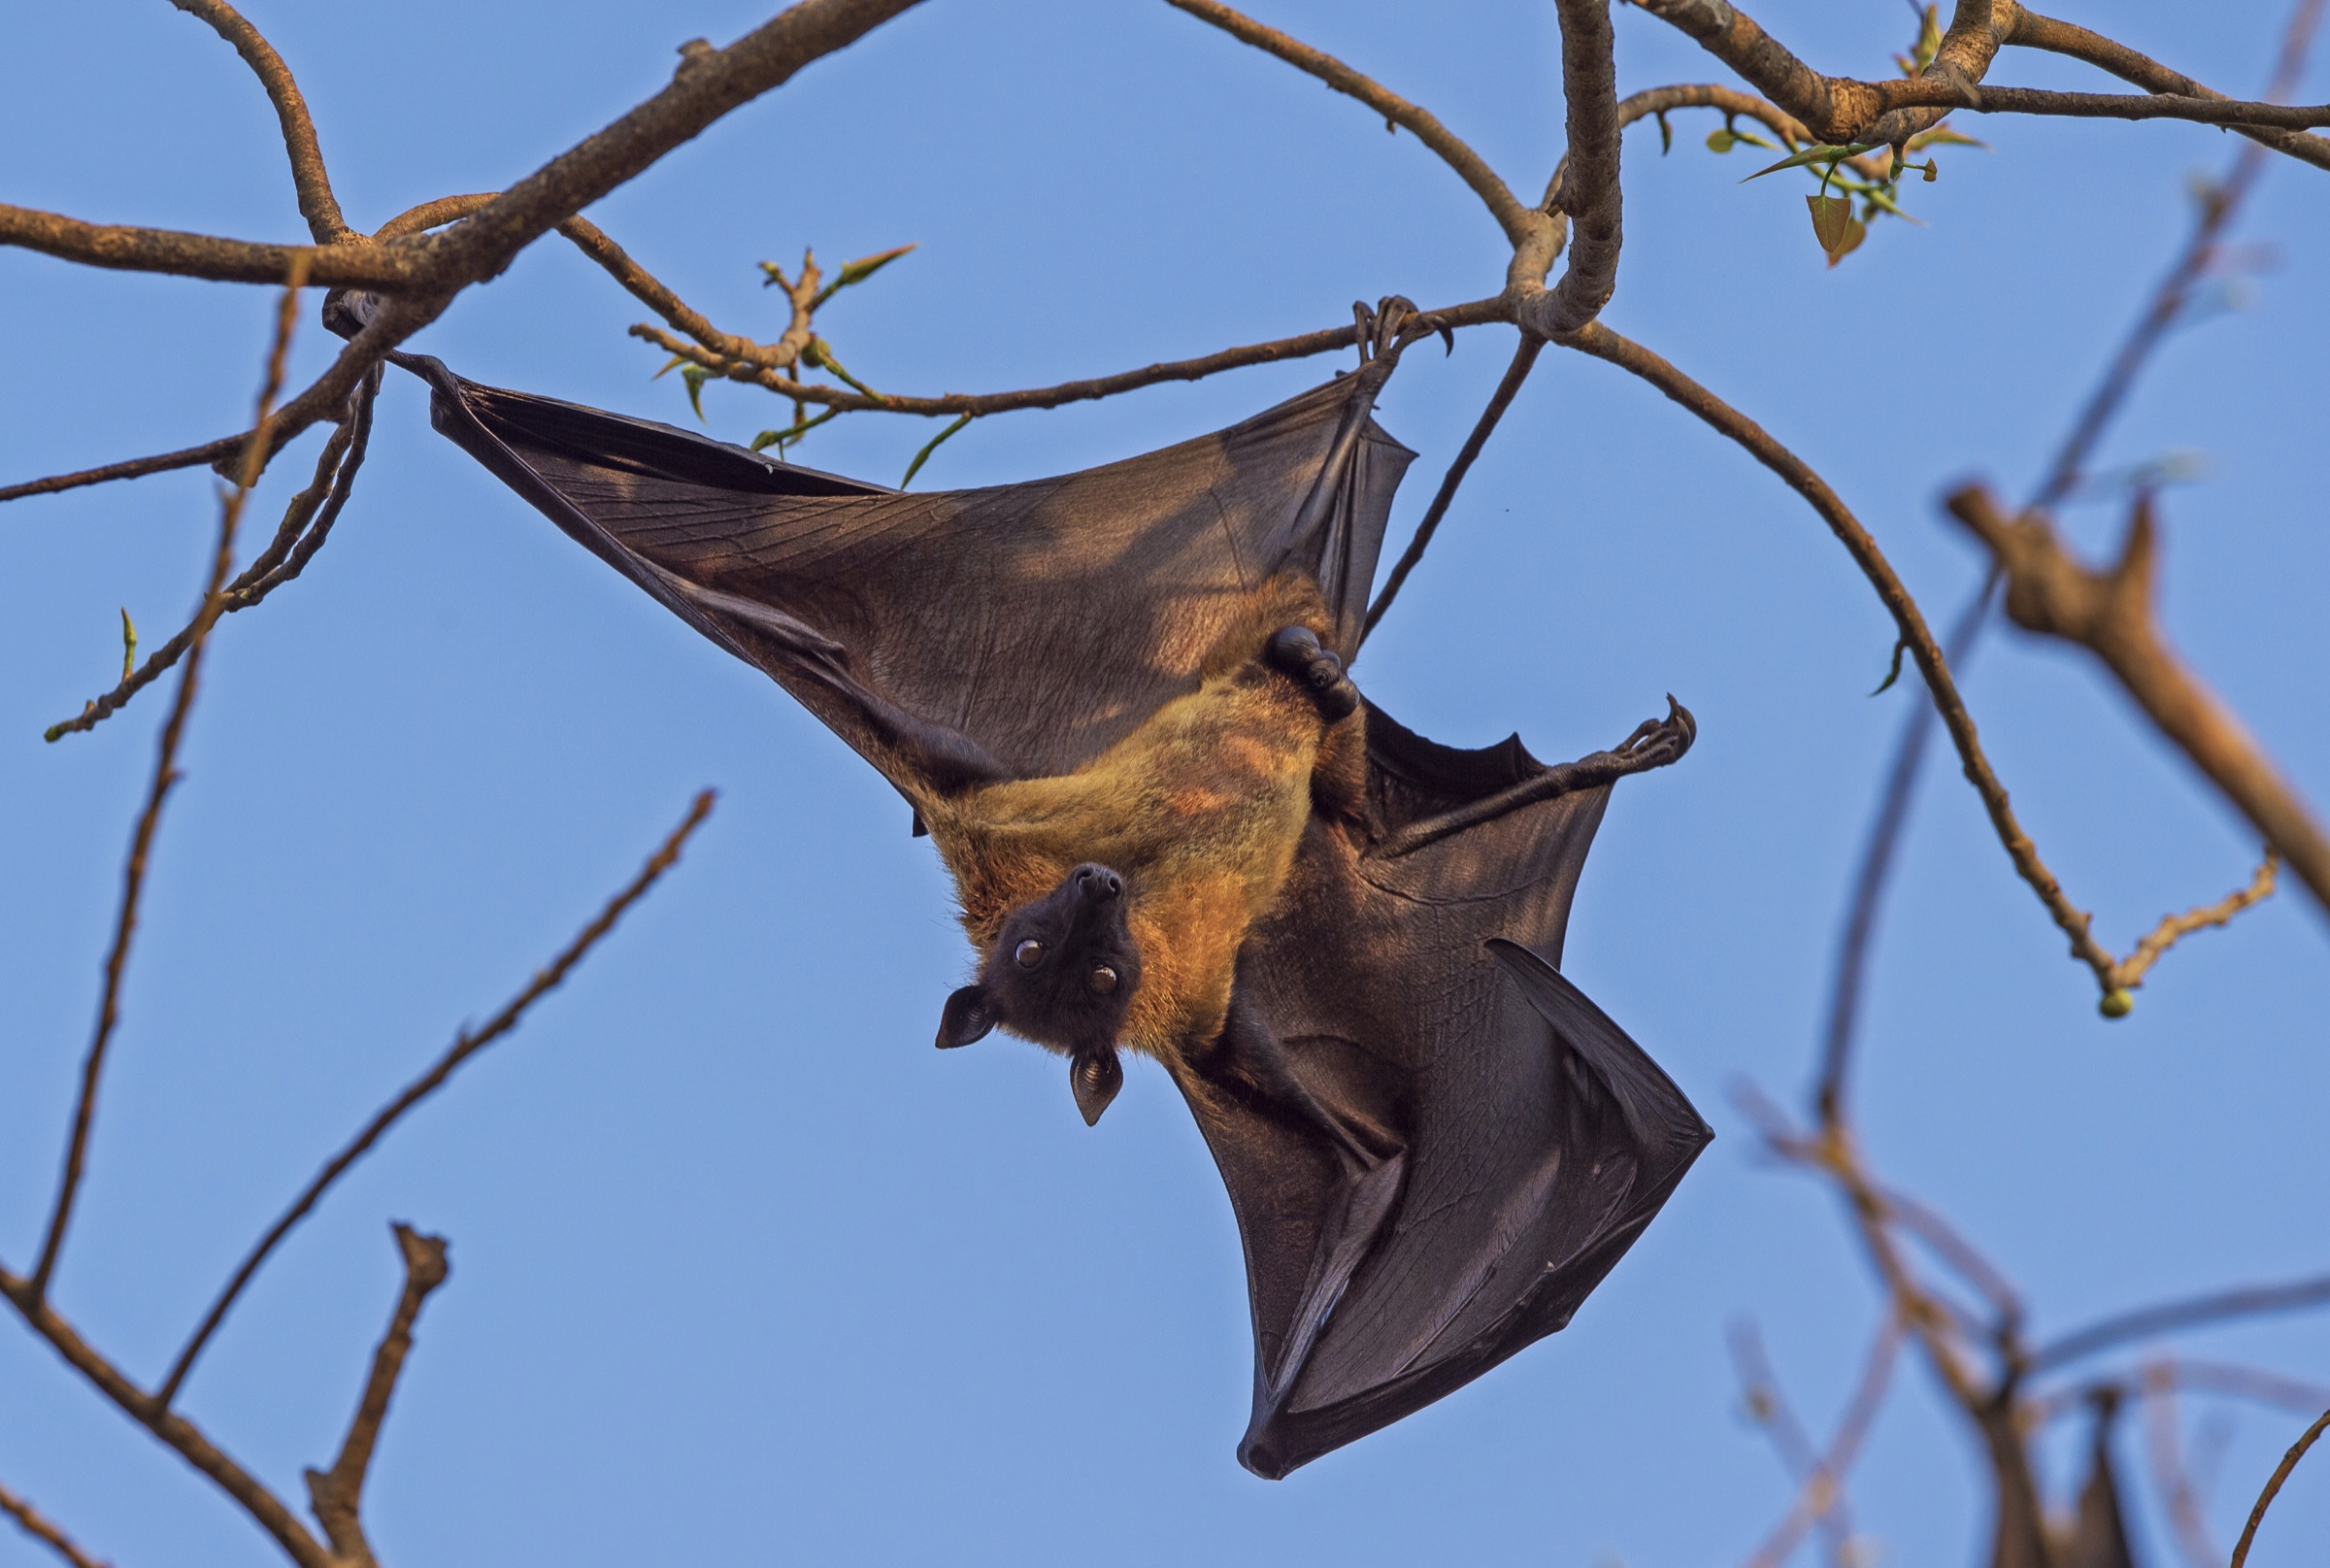 An Indian flying fox, a fruit bat native to Bangladesh and India, dangles from a perch in the roost tree where it will spend the day before going off to forage when the sun sets. Photograph by Dhritiman Mukherjee